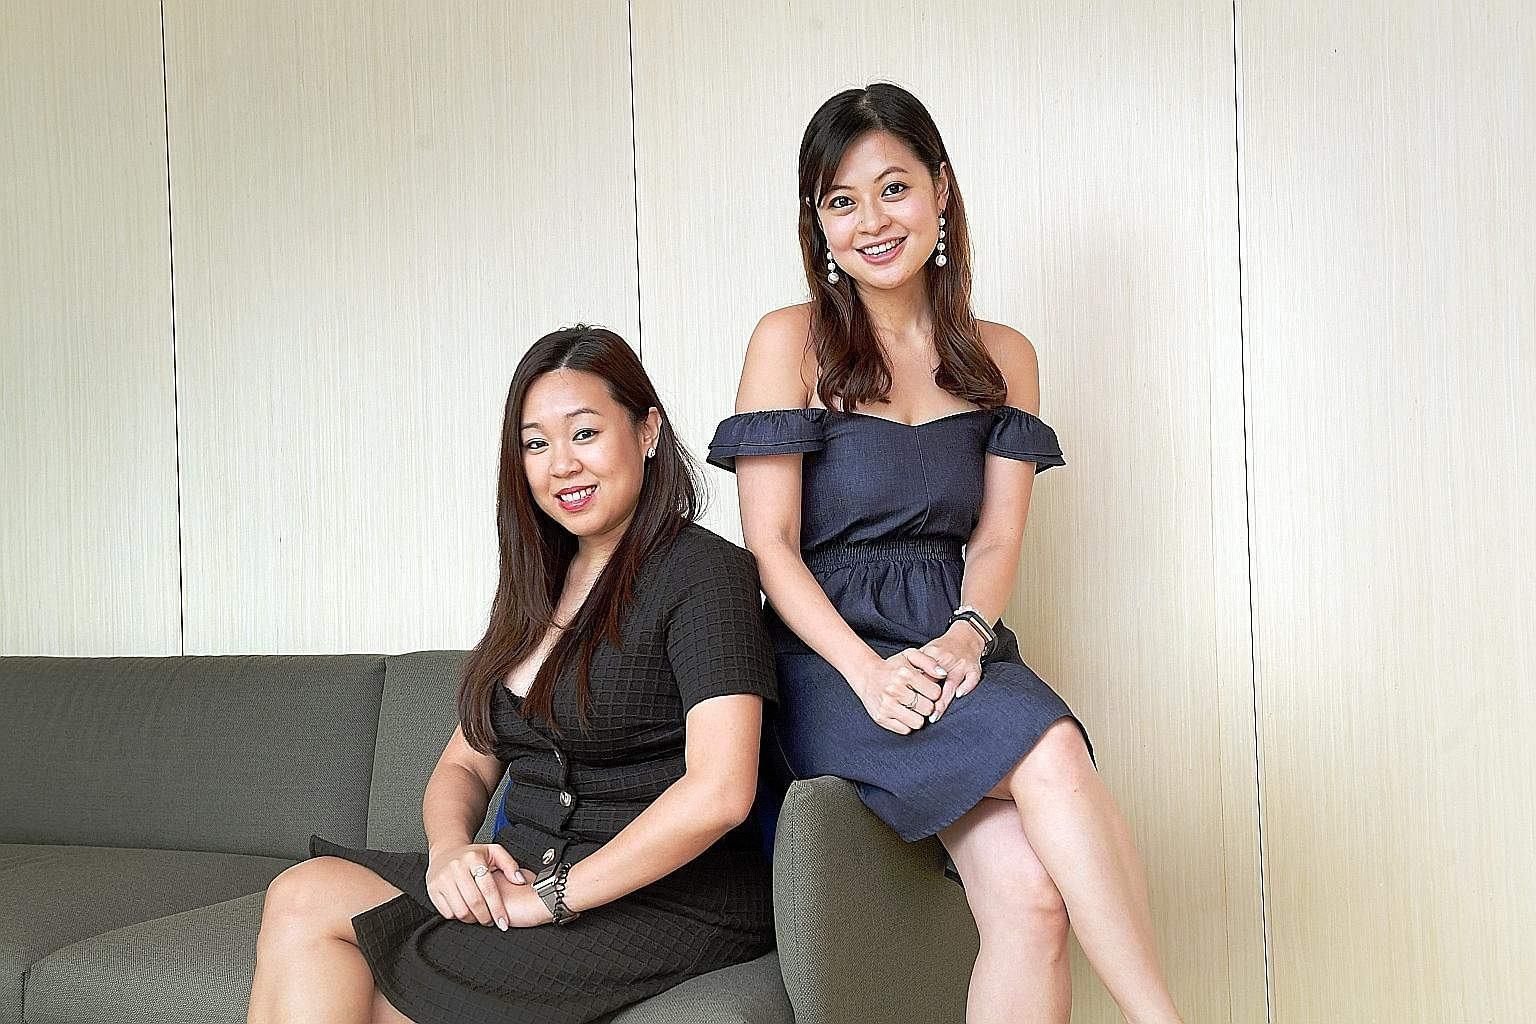 Delegate founders Melissa Lou (far left) and Jacqueline Ye. The online marketplace, which helps users source event venues and vendors, lets companies list for free. It set up a site where business owners can find information on growing sales using on